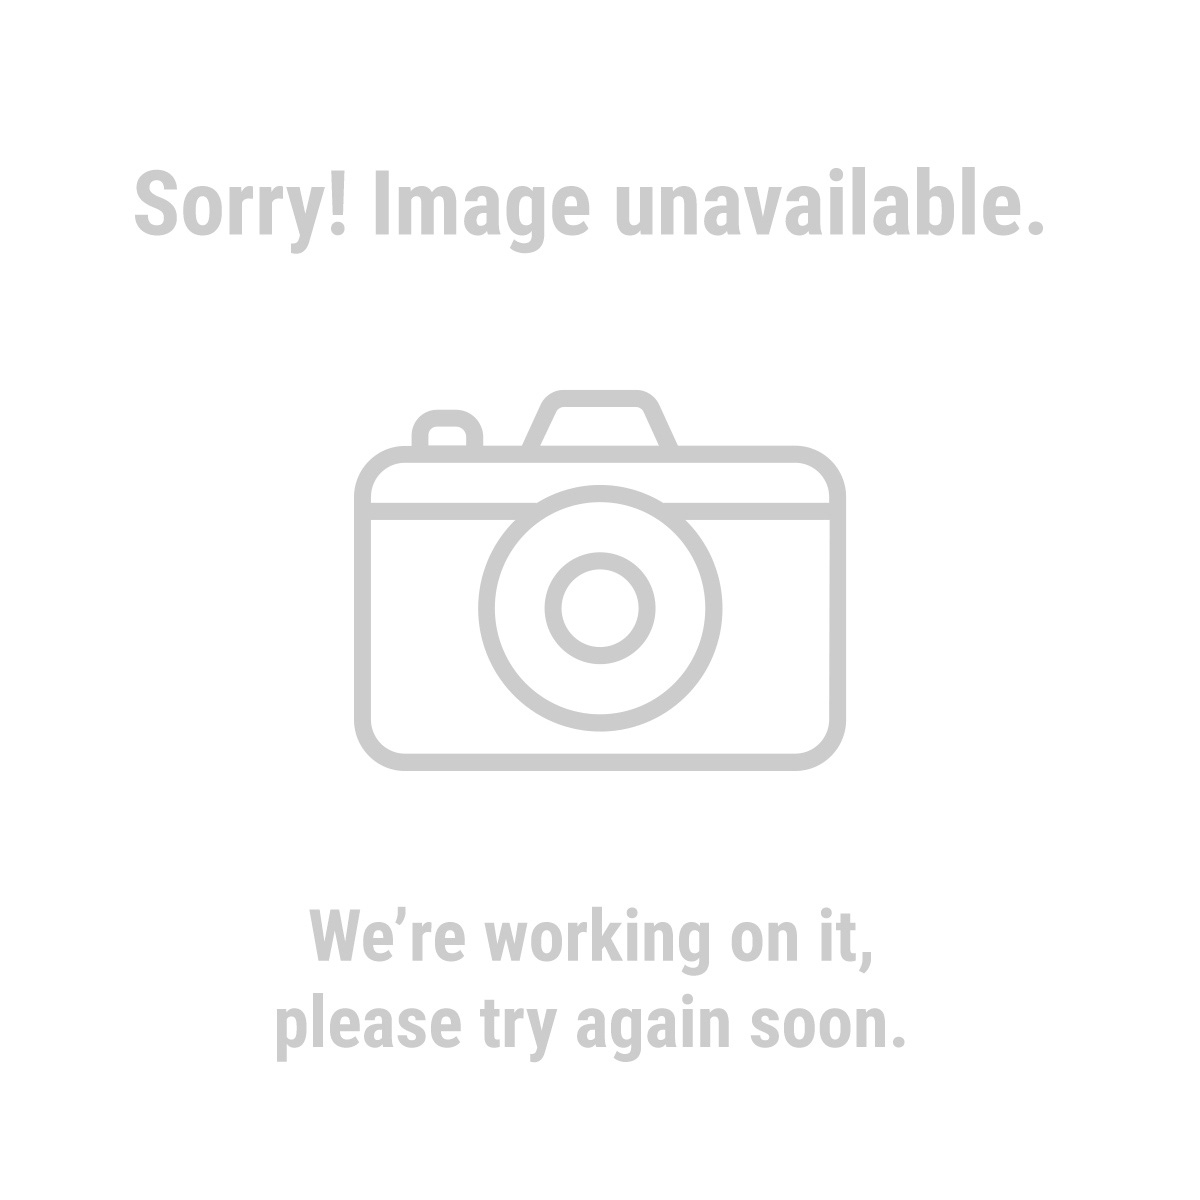 Haul-Master® 62369 2-in-1 Convertible Hand Truck